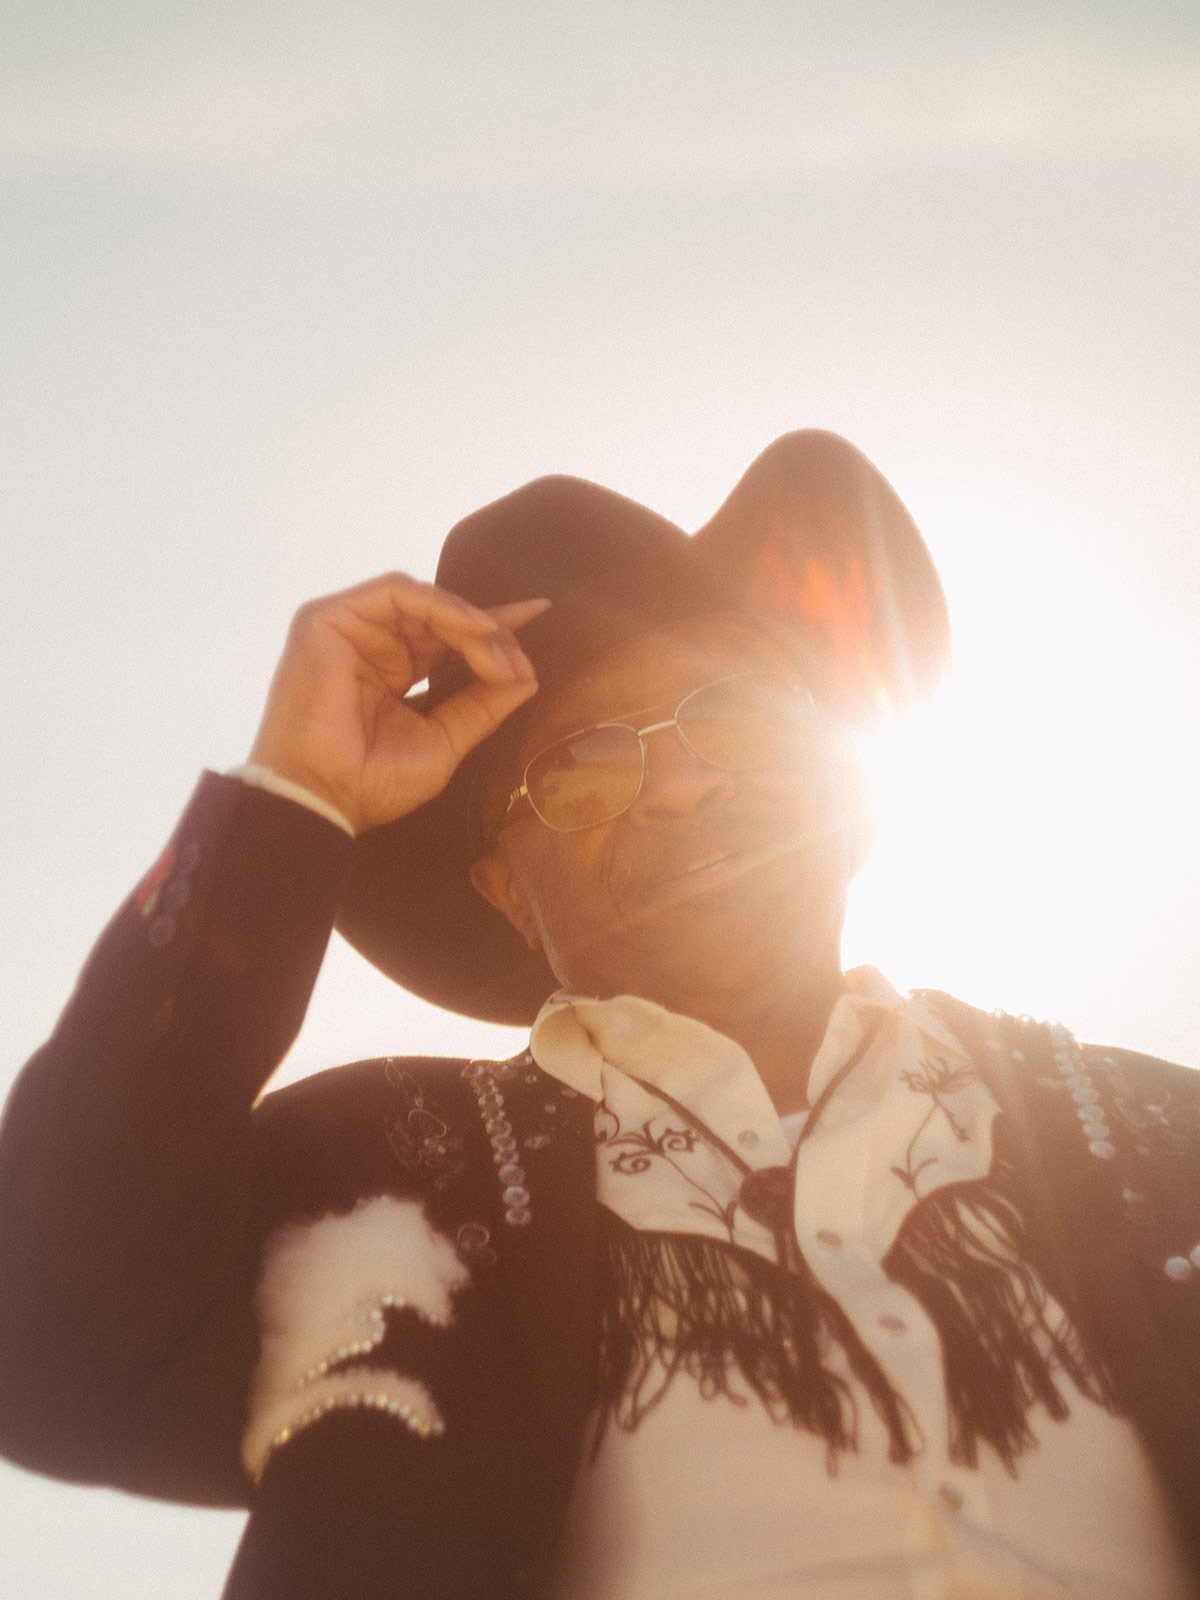 Hard times and heartbreak: Swamp Dogg articulates America's collective pain through country music